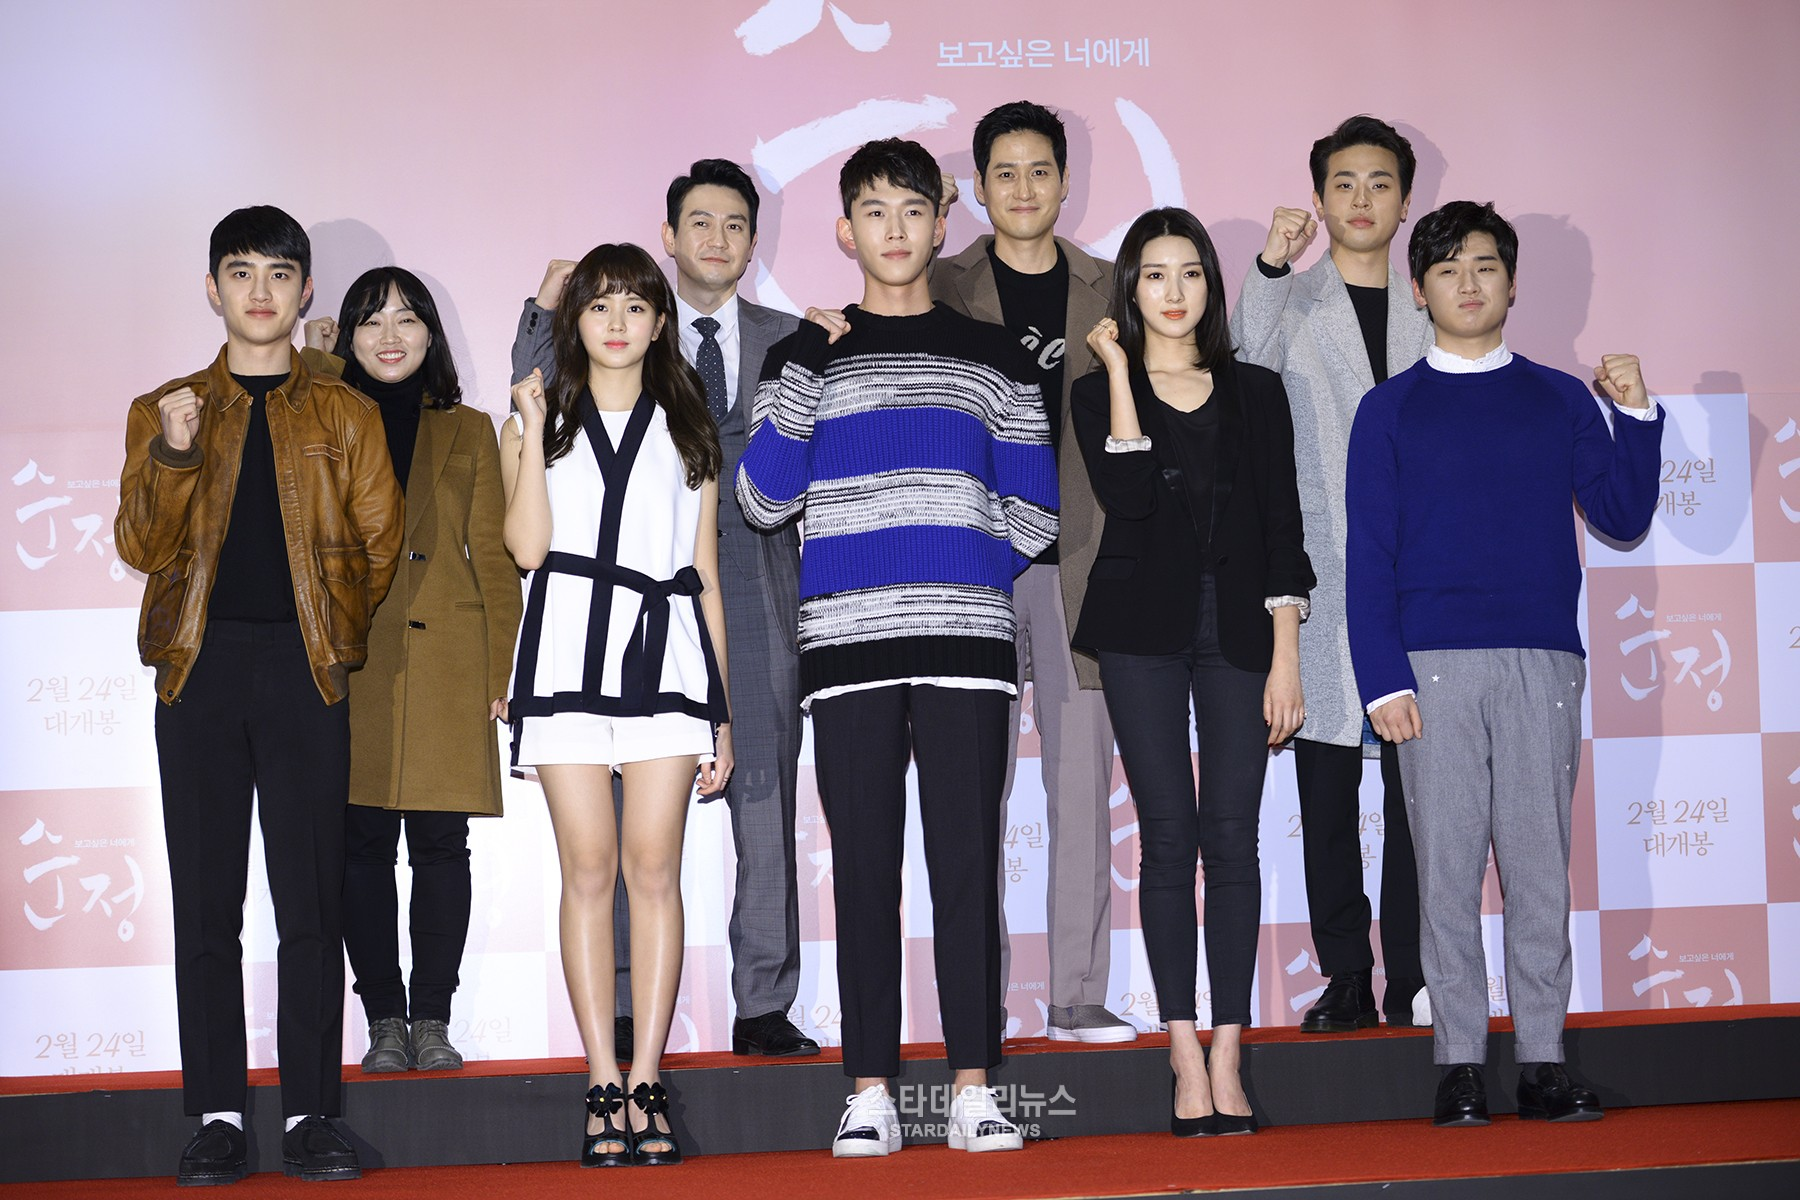 D.O and Kim So Hyuns Pure Love VIP Screening Brings Out SM Ent. Artists, Lee Kwang Soo, and More